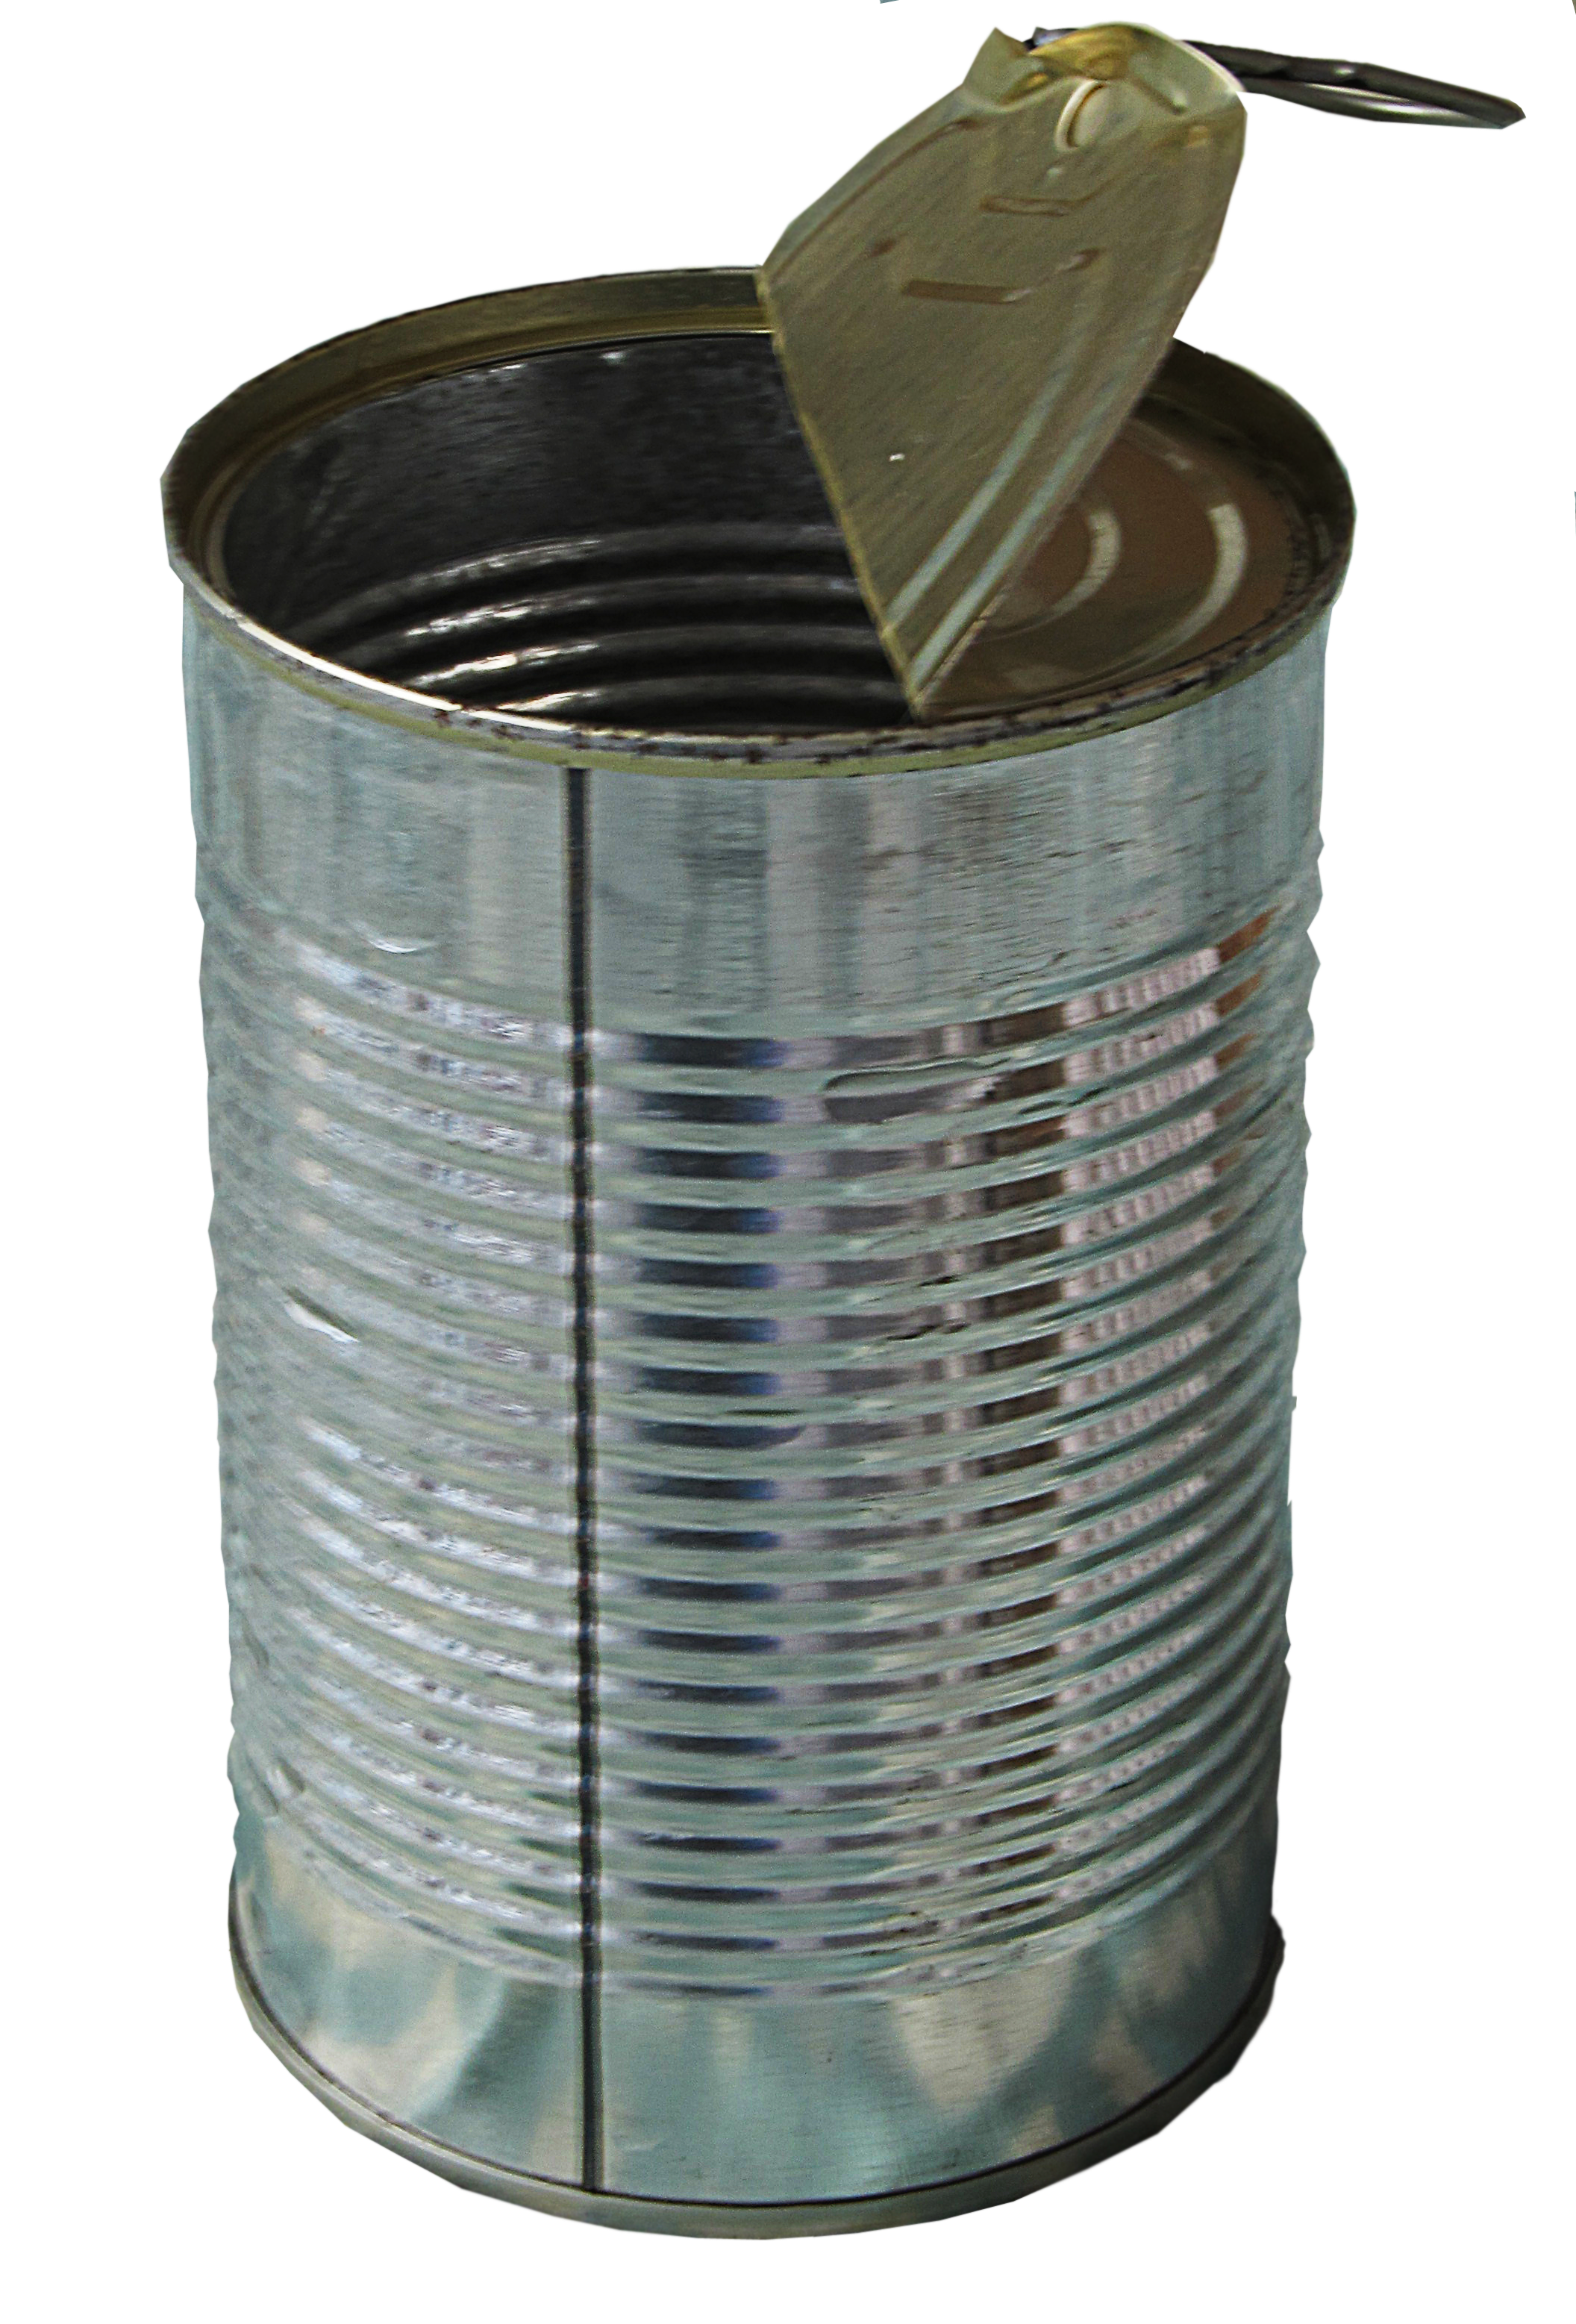 Tin Can Png By Amalus D K Qd.